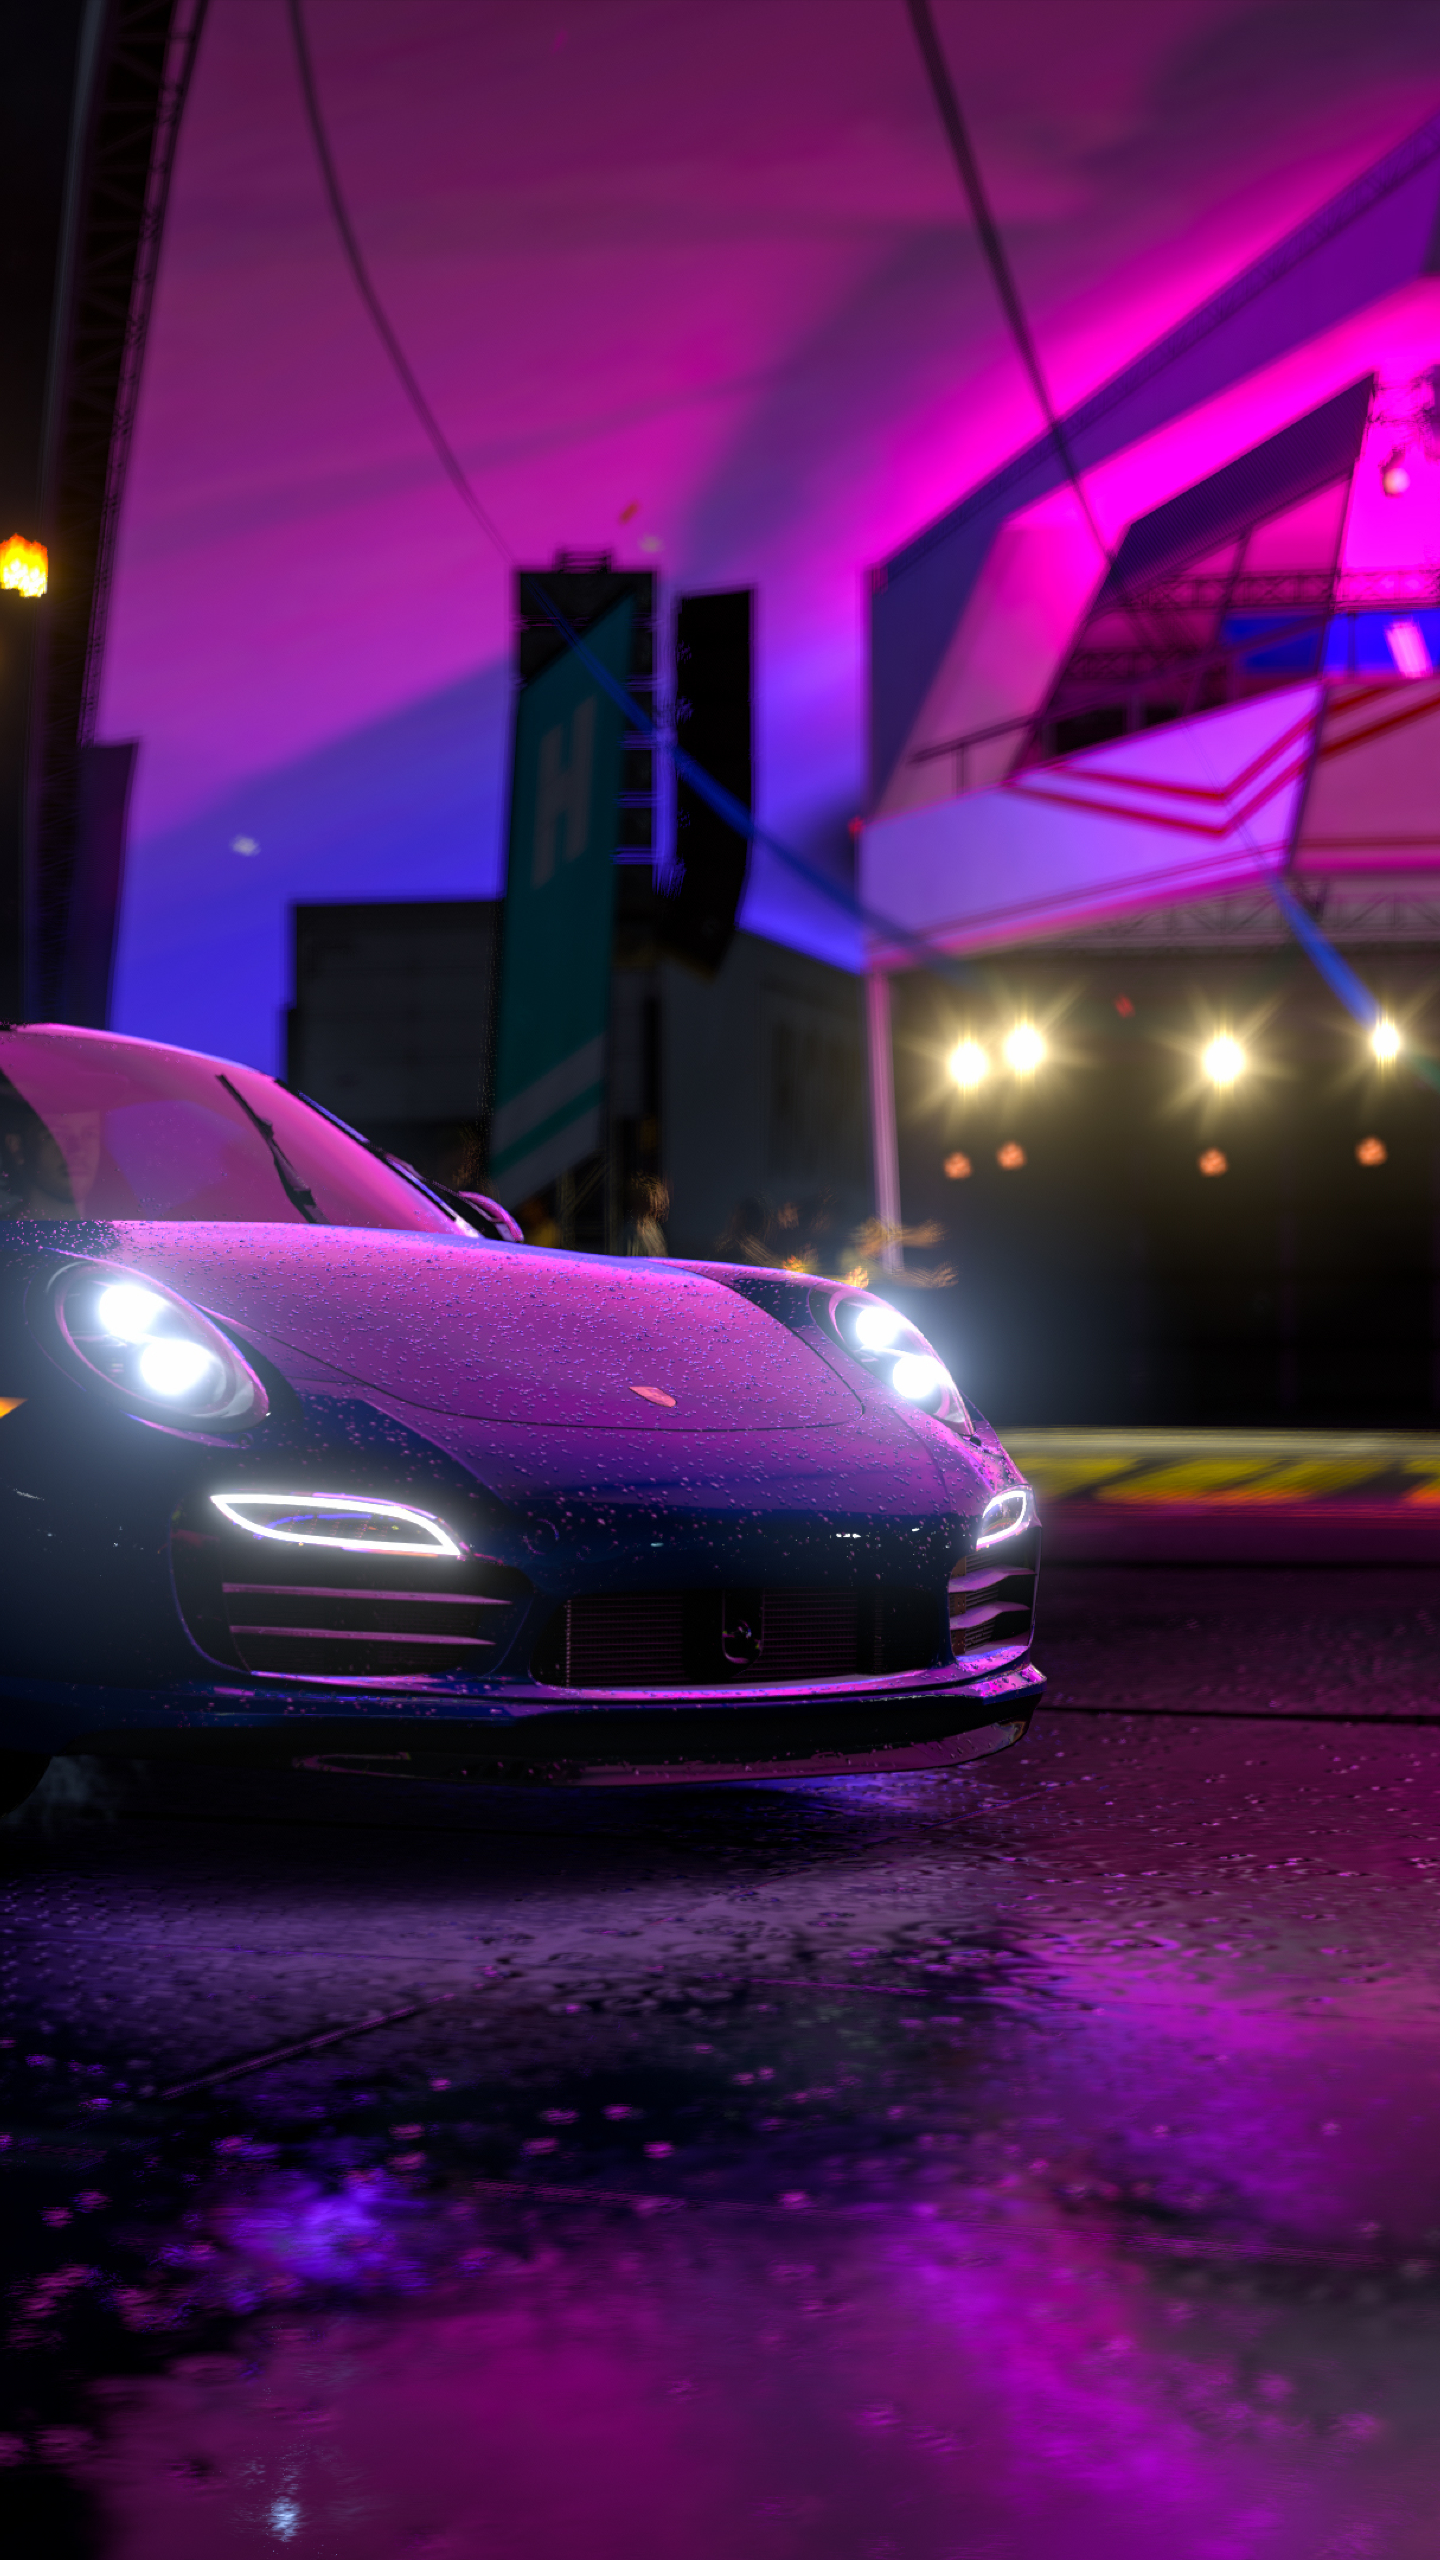 download forza horizon 3 porsche 911 1440x2560 resolution, hd 4k